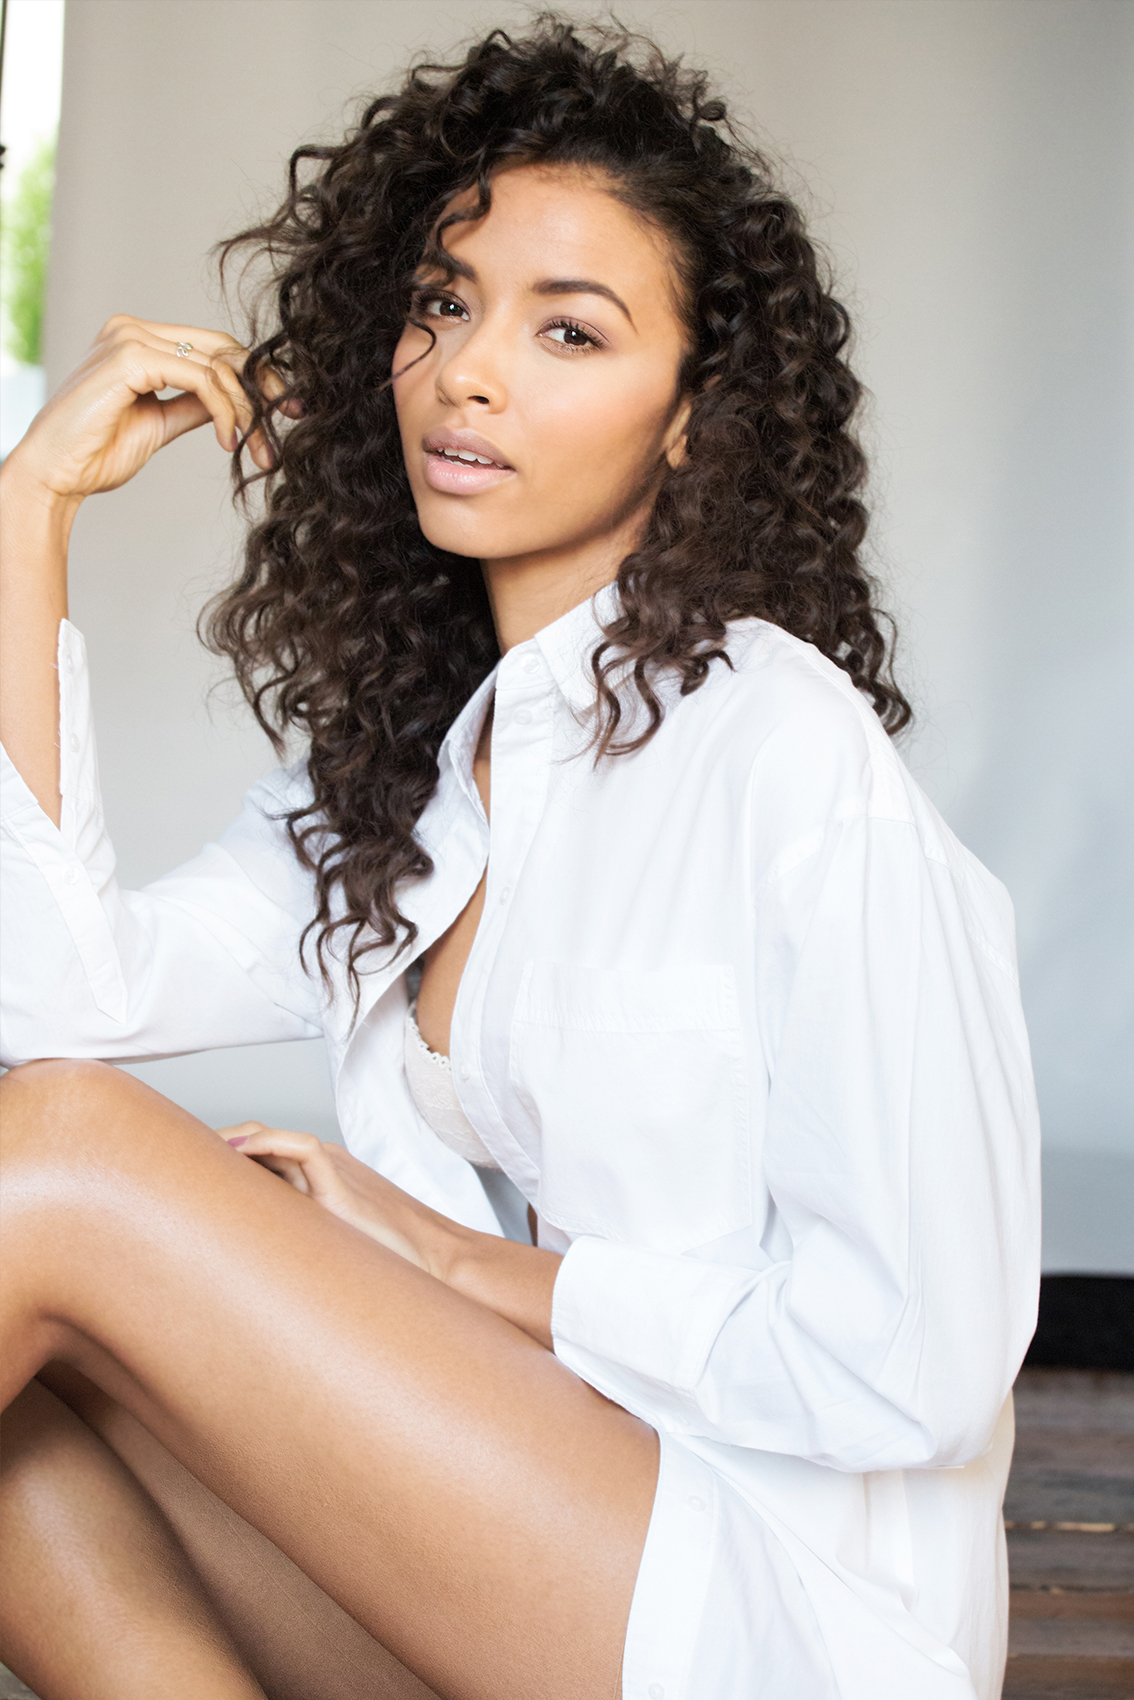 Fotos Flora Coquerel naked (45 foto and video), Pussy, Cleavage, Feet, cleavage 2020